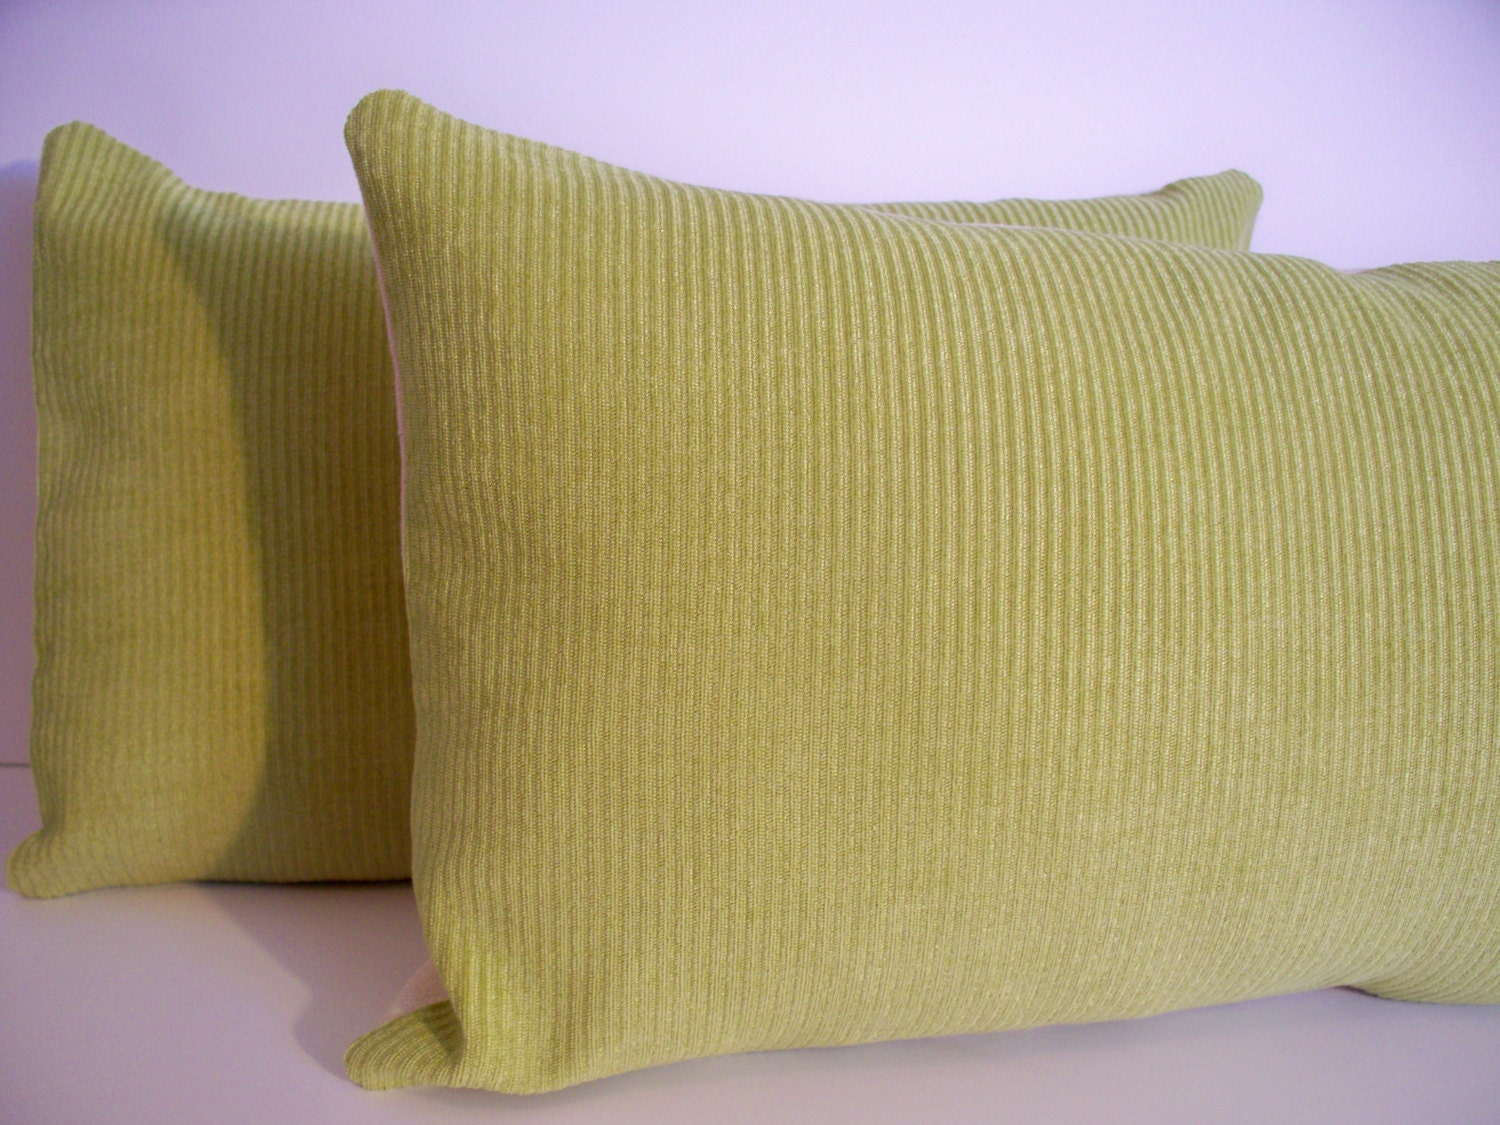 Celery Green Throw Pillow : Lime Green Celery Velvet Pillow Cover Decorative Pillow Lumbar 10X16 Images - Frompo